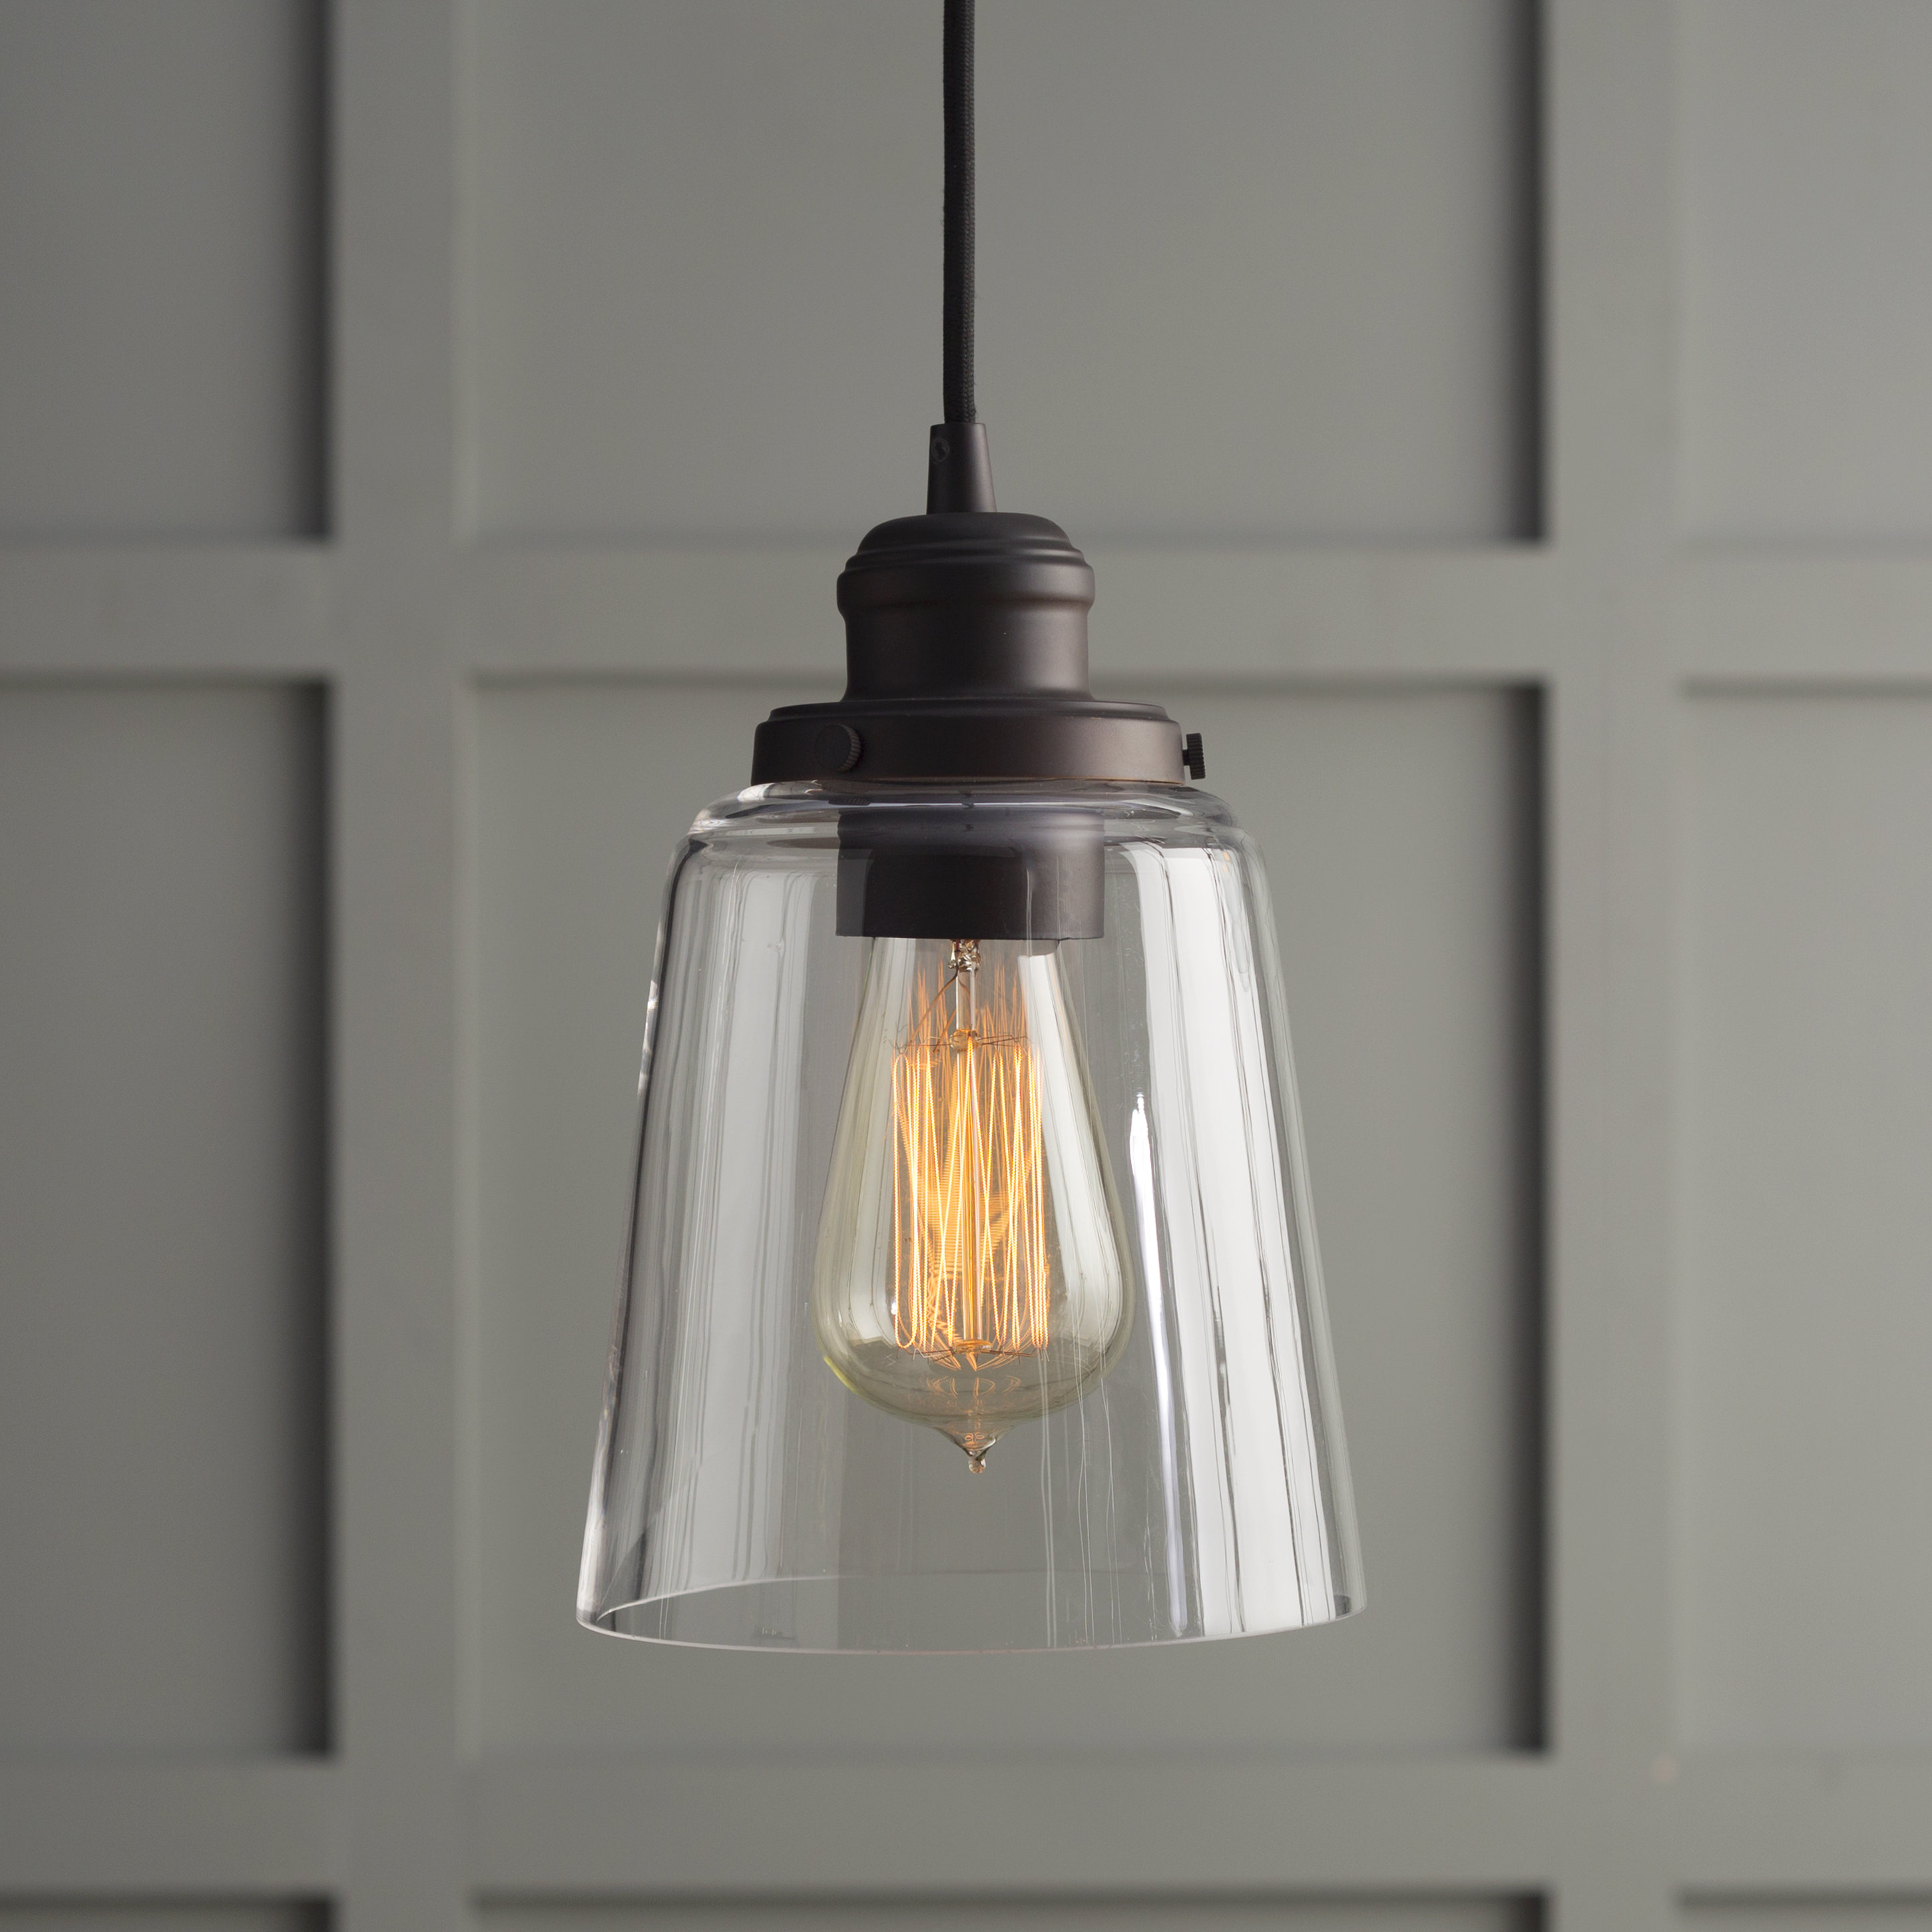 1 Light Single Bell Pendant Throughout Moyer 1 Light Single Cylinder Pendants (View 7 of 30)